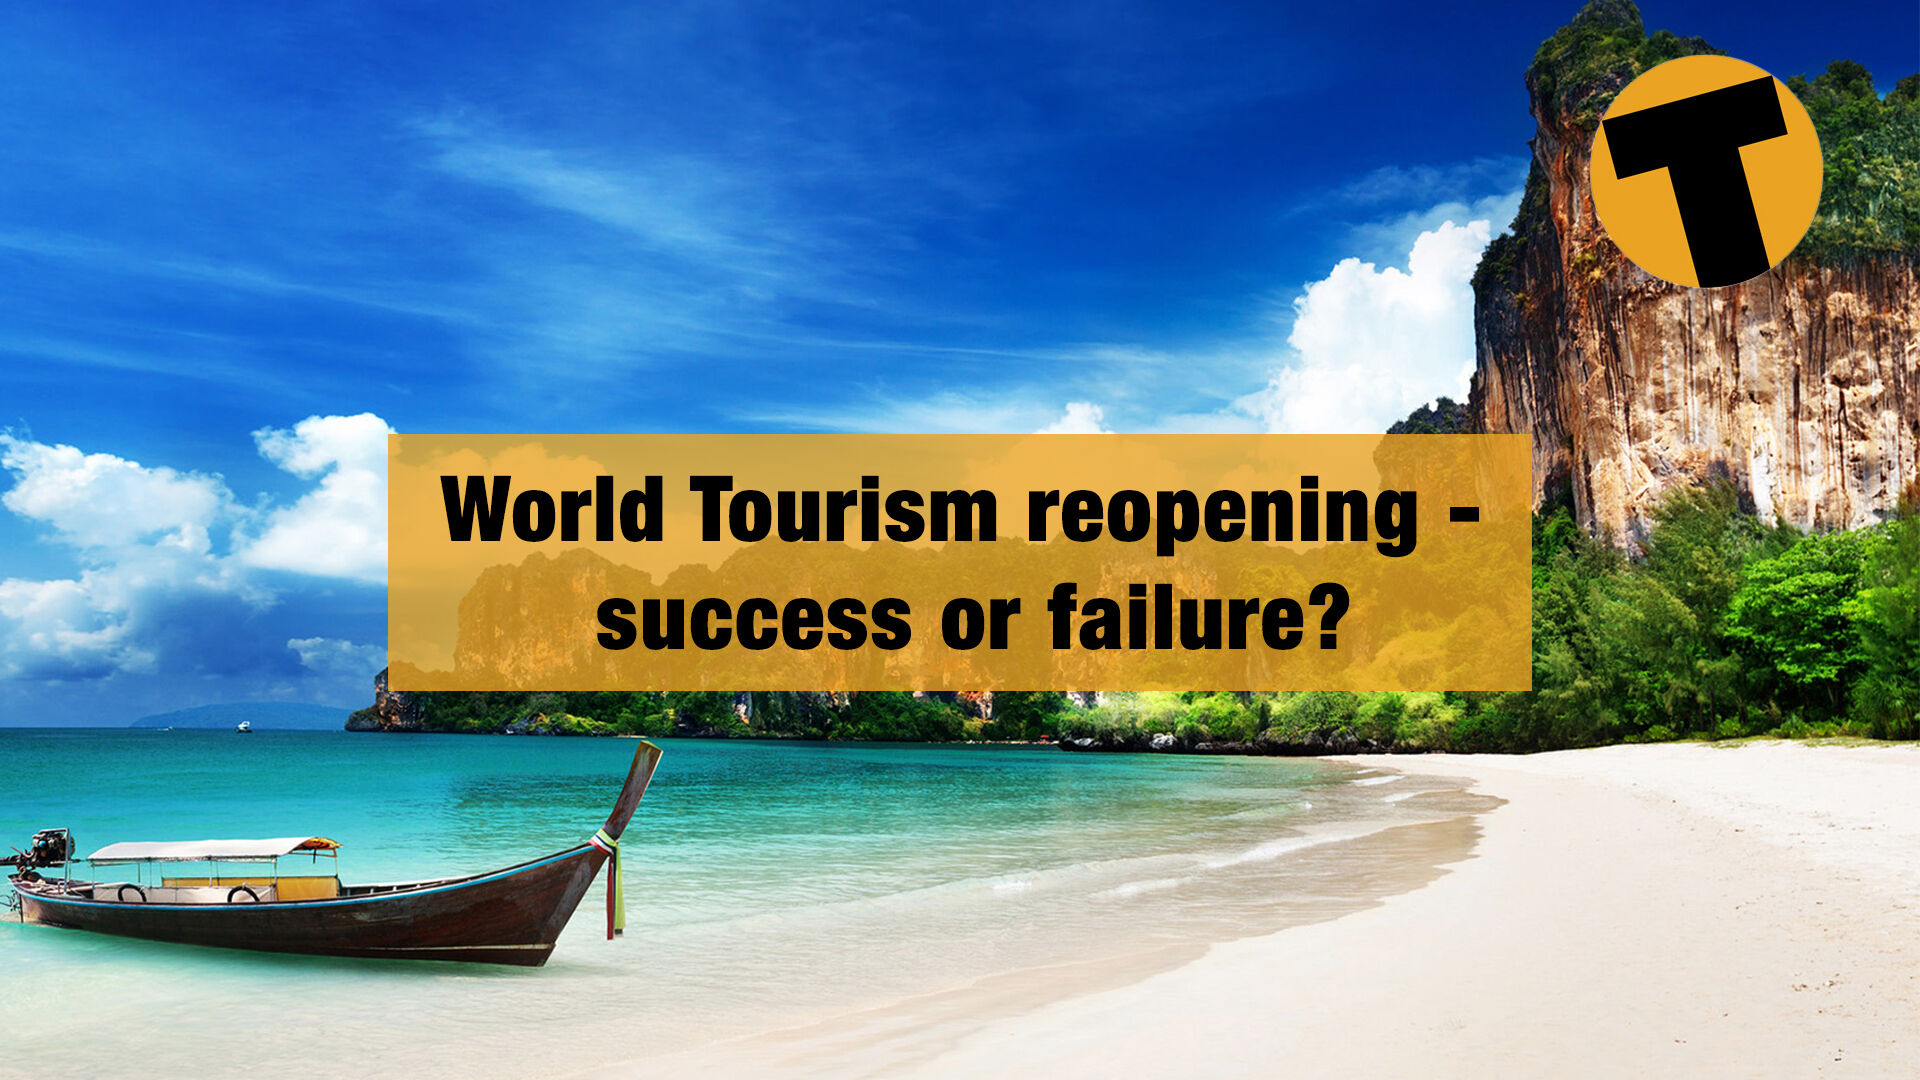 World Tourism hotspots re-opening – success or failure? | VIDEO | The Thaiger